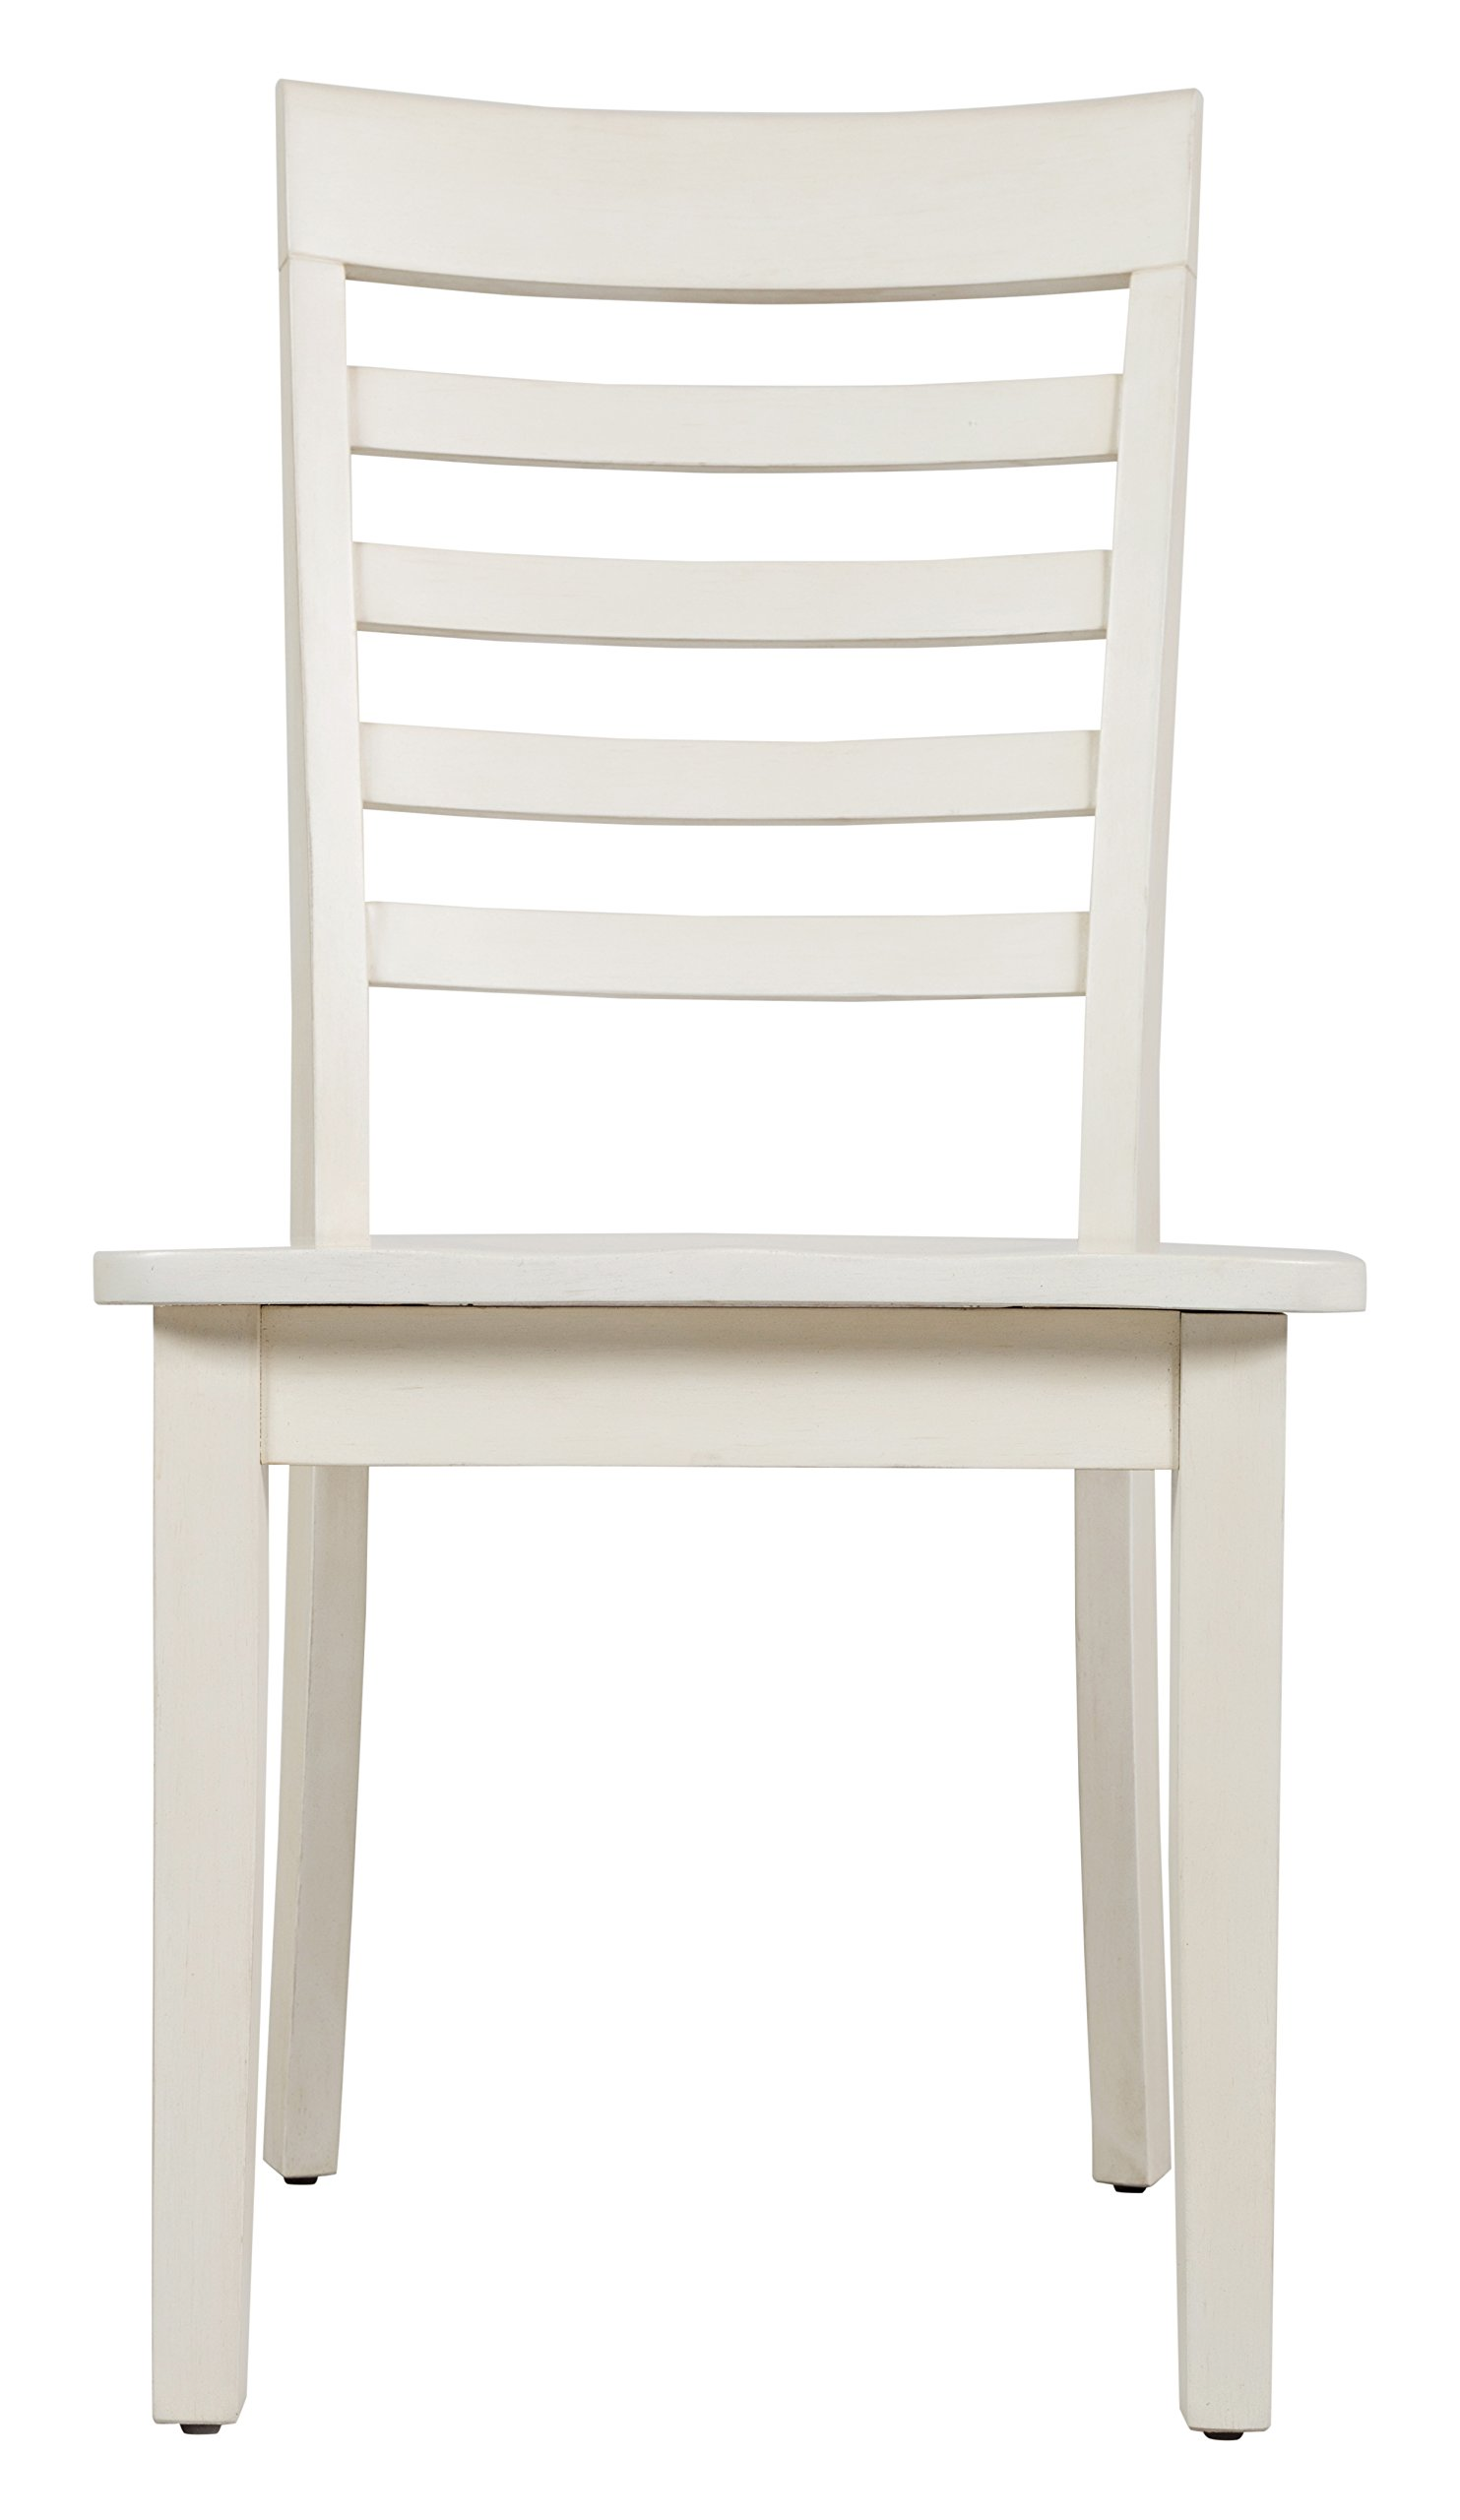 Jofran: 1629-912KD, Everyday Classics, Ladderback Dining Side Chair, 19''W X 22''D X 37''H, Linen Finish, (Set of 2) by Jofran